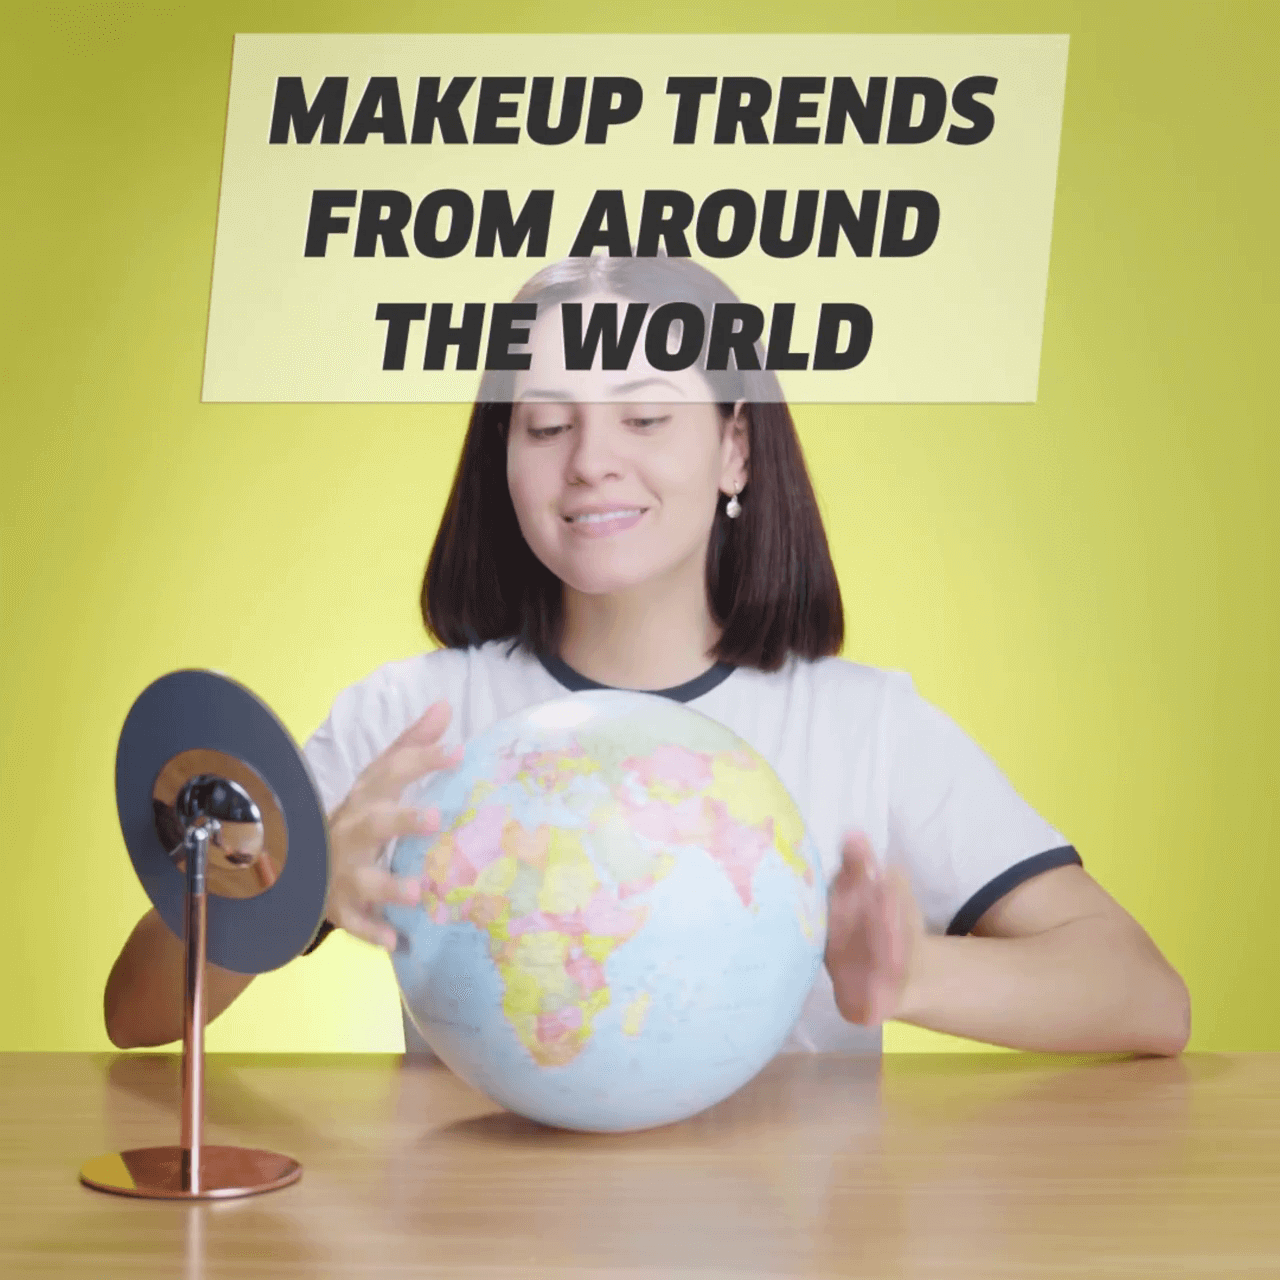 Makeup Trends From Around The World